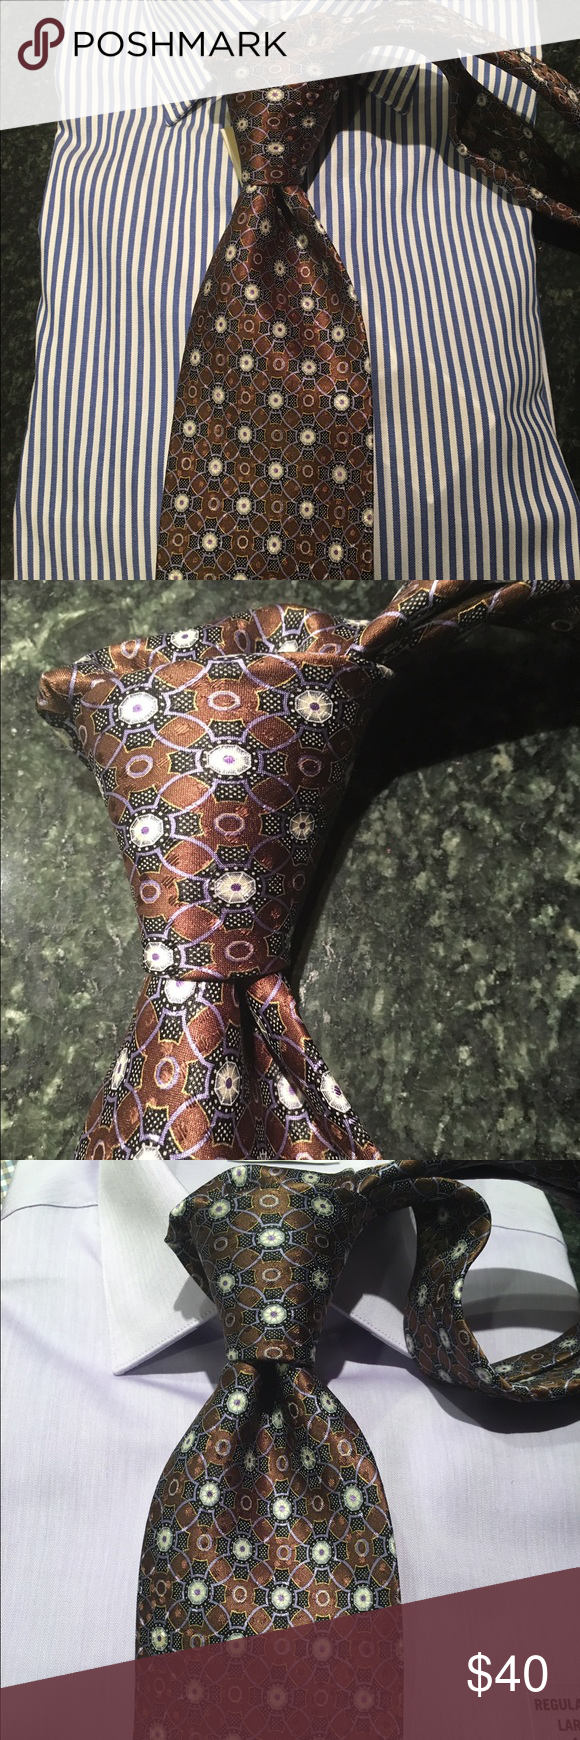 Robert Talbott tie High end Robert Talbott tie - brown background with blue and white accent colors.  Goes great with all colors and patterned shirts! Robert Talbott Accessories Ties